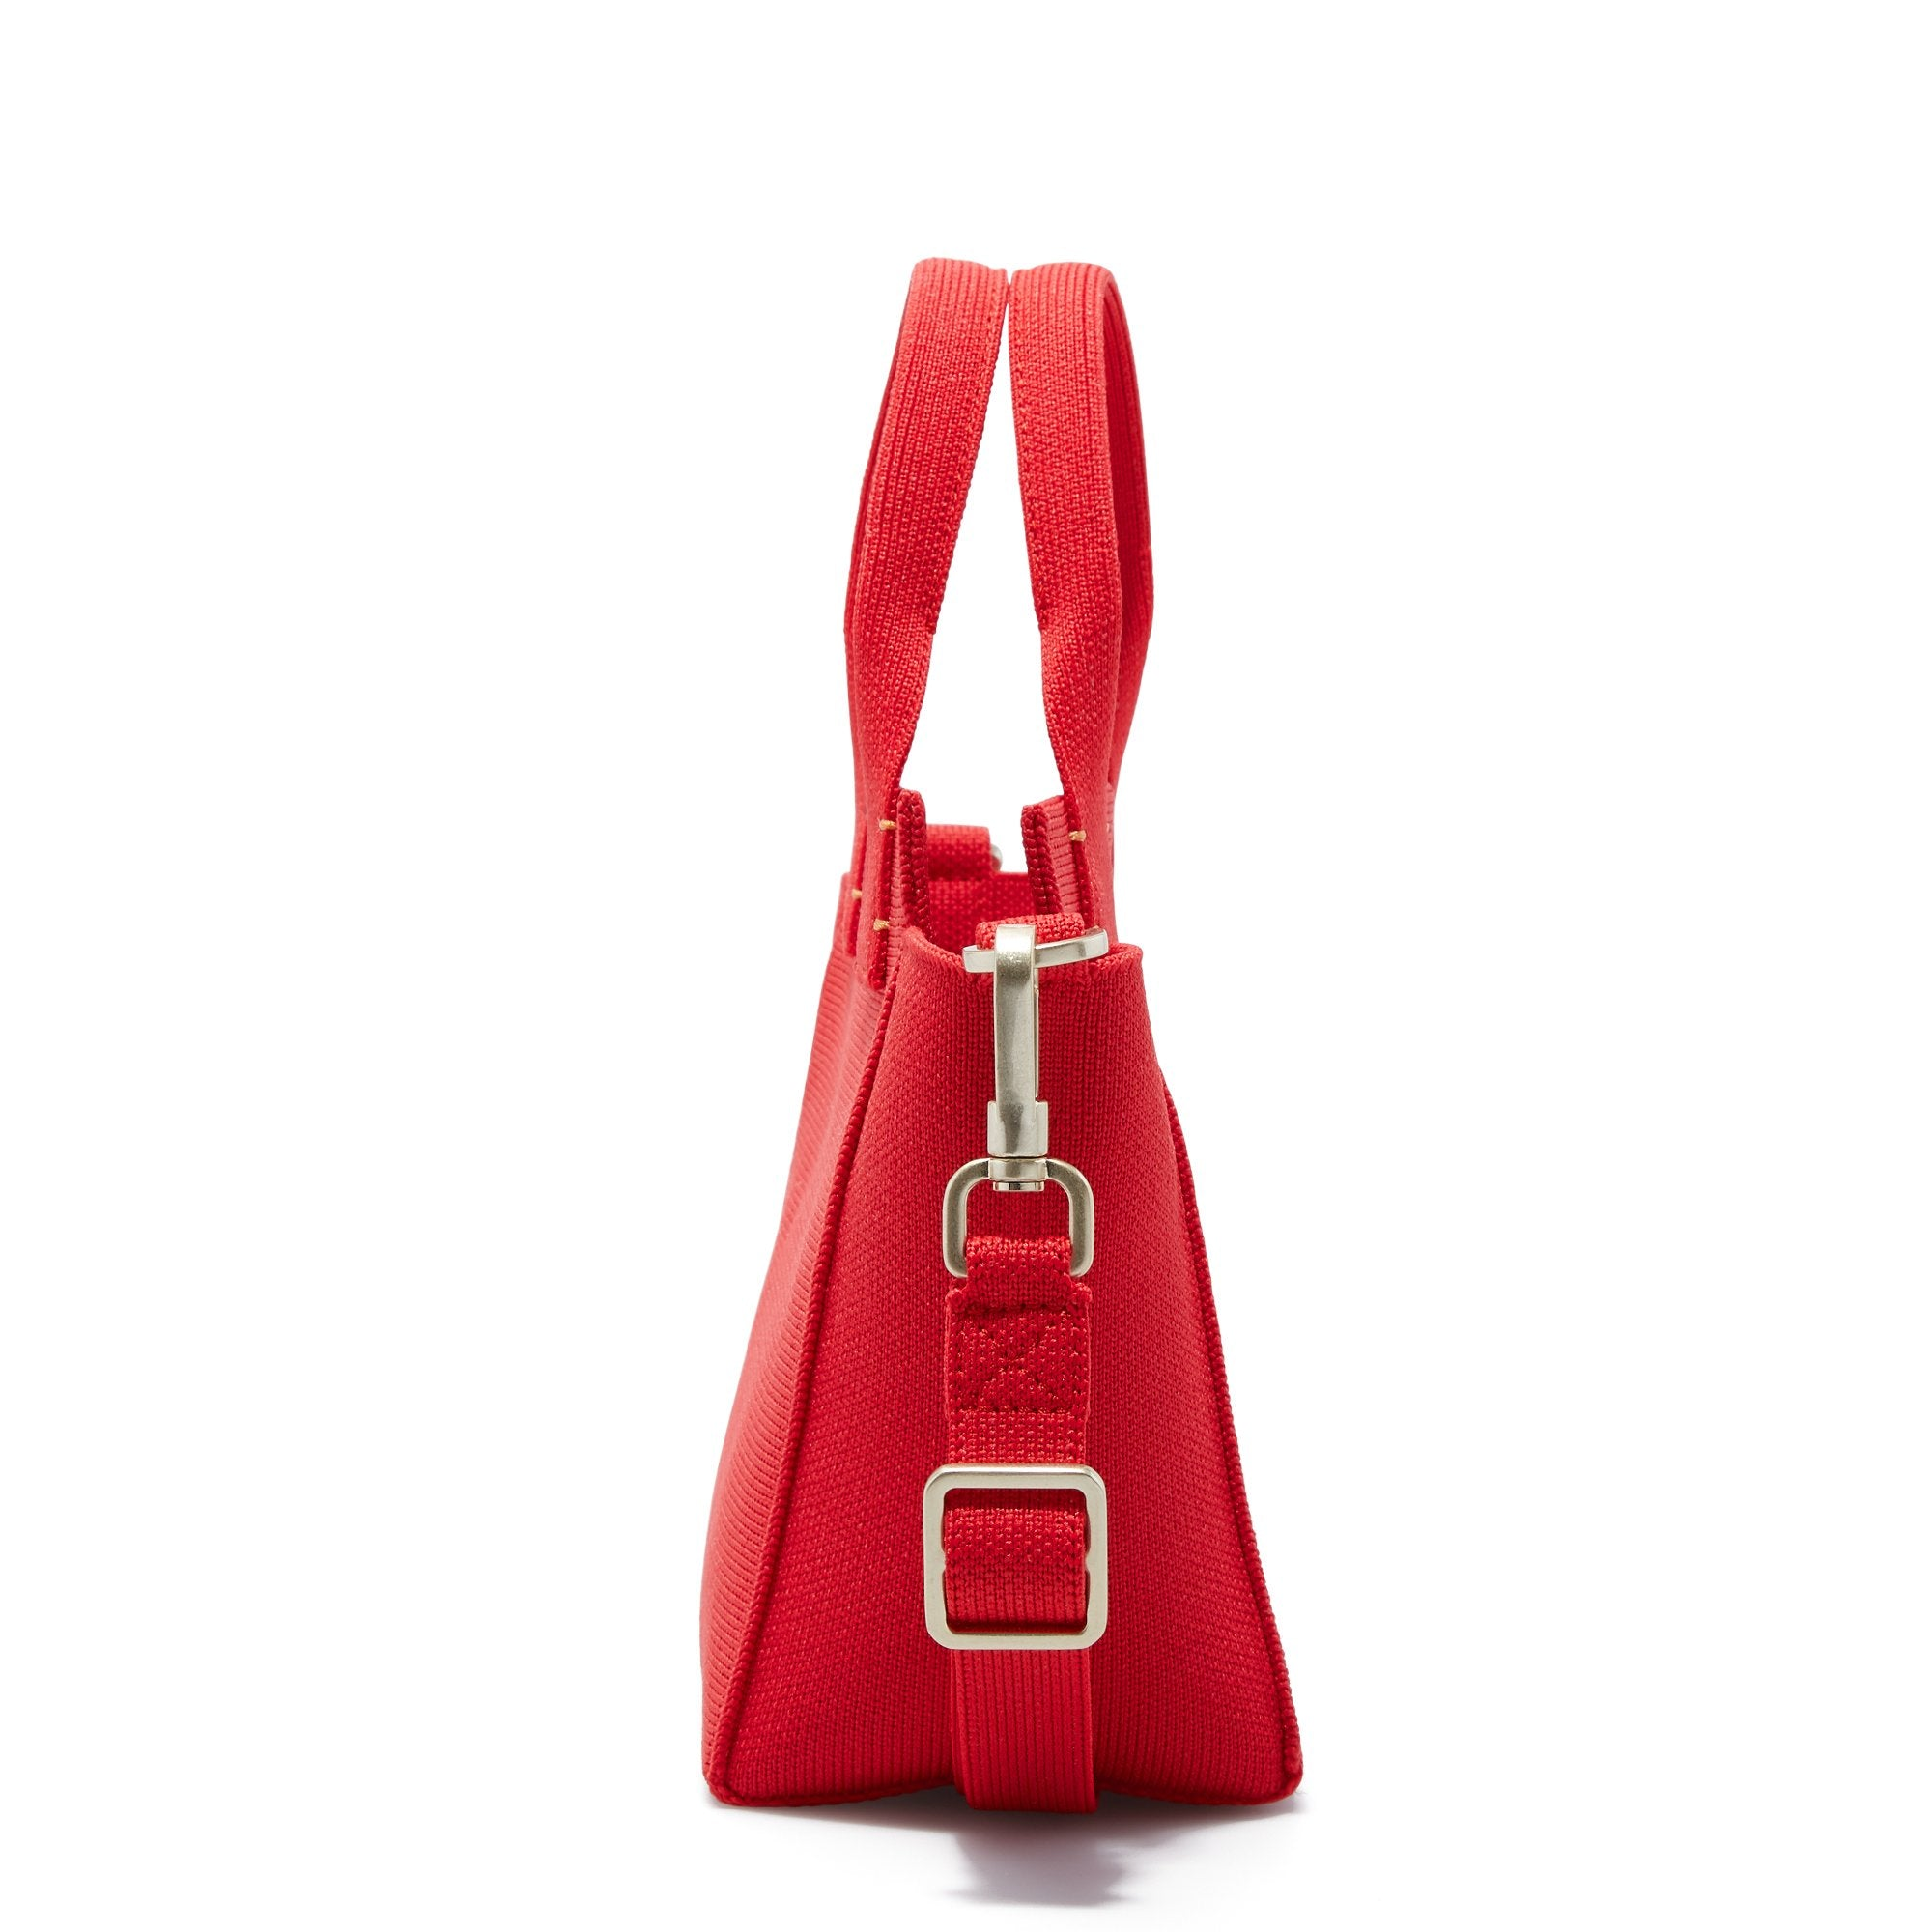 The Mini Handbag in Candy Apple shown from the side.